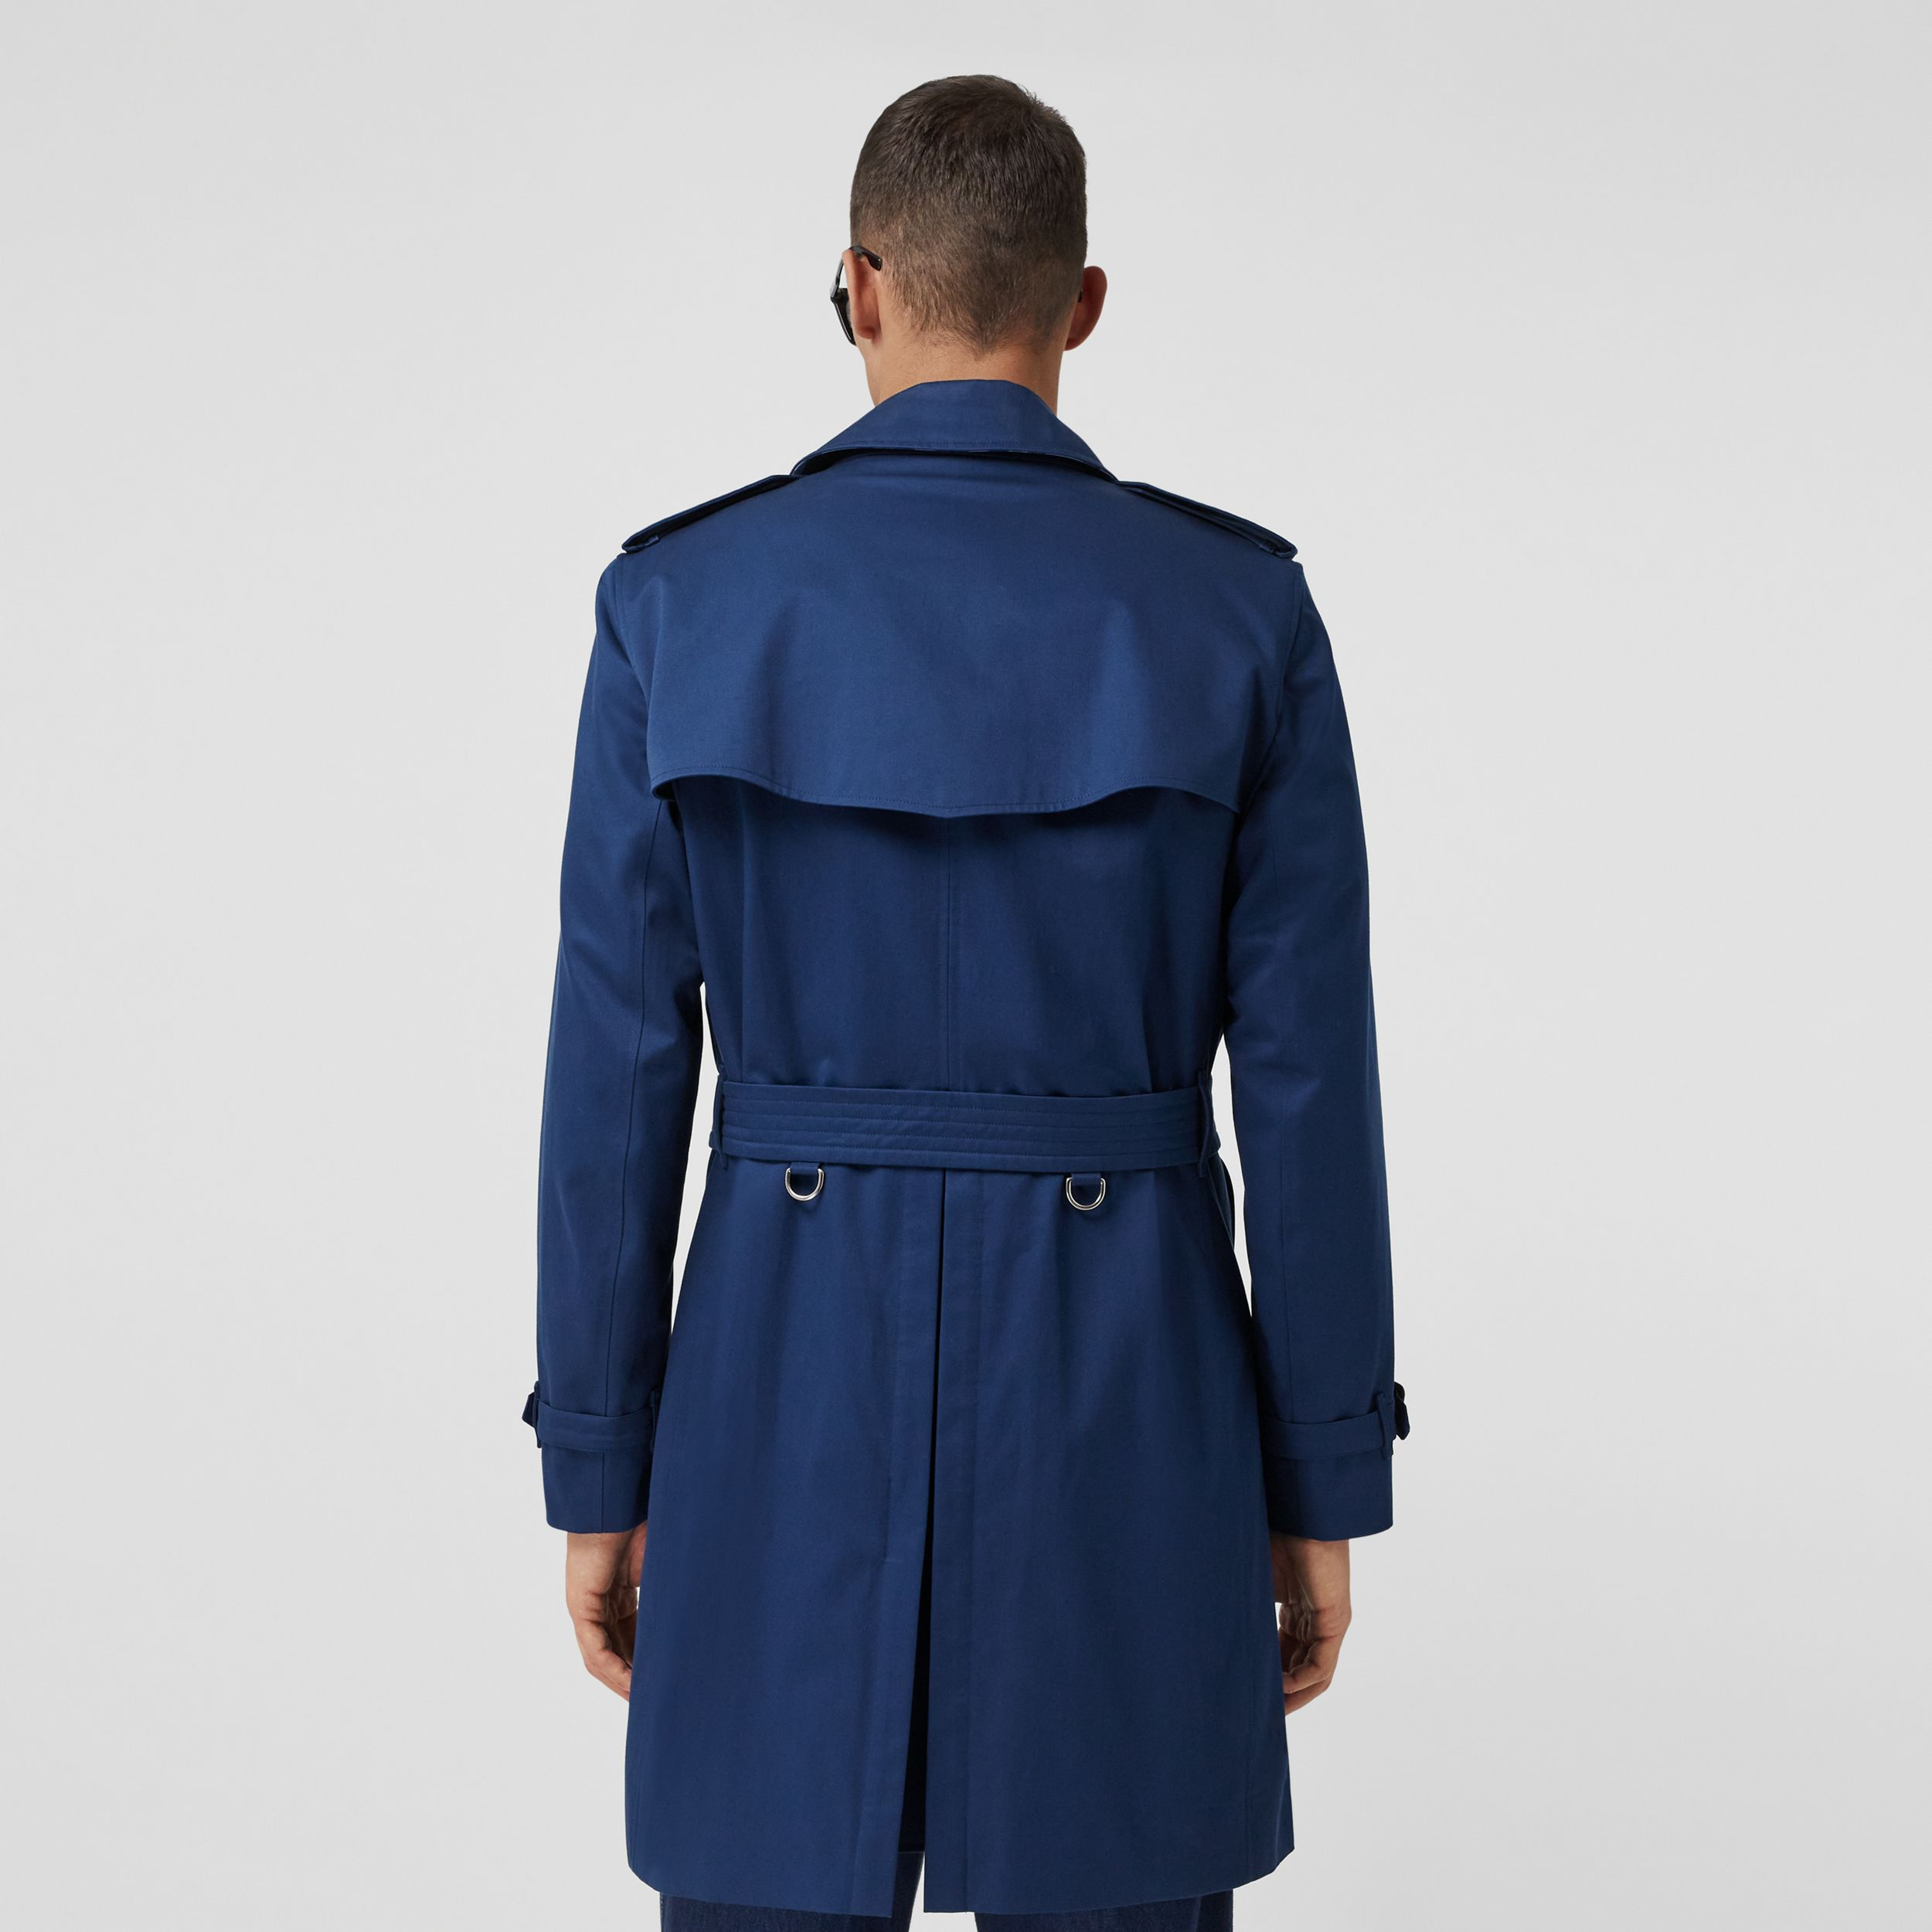 The Mid-length Kensington Trench Coat in Ink Blue - Men | Burberry Hong Kong S.A.R. - 3